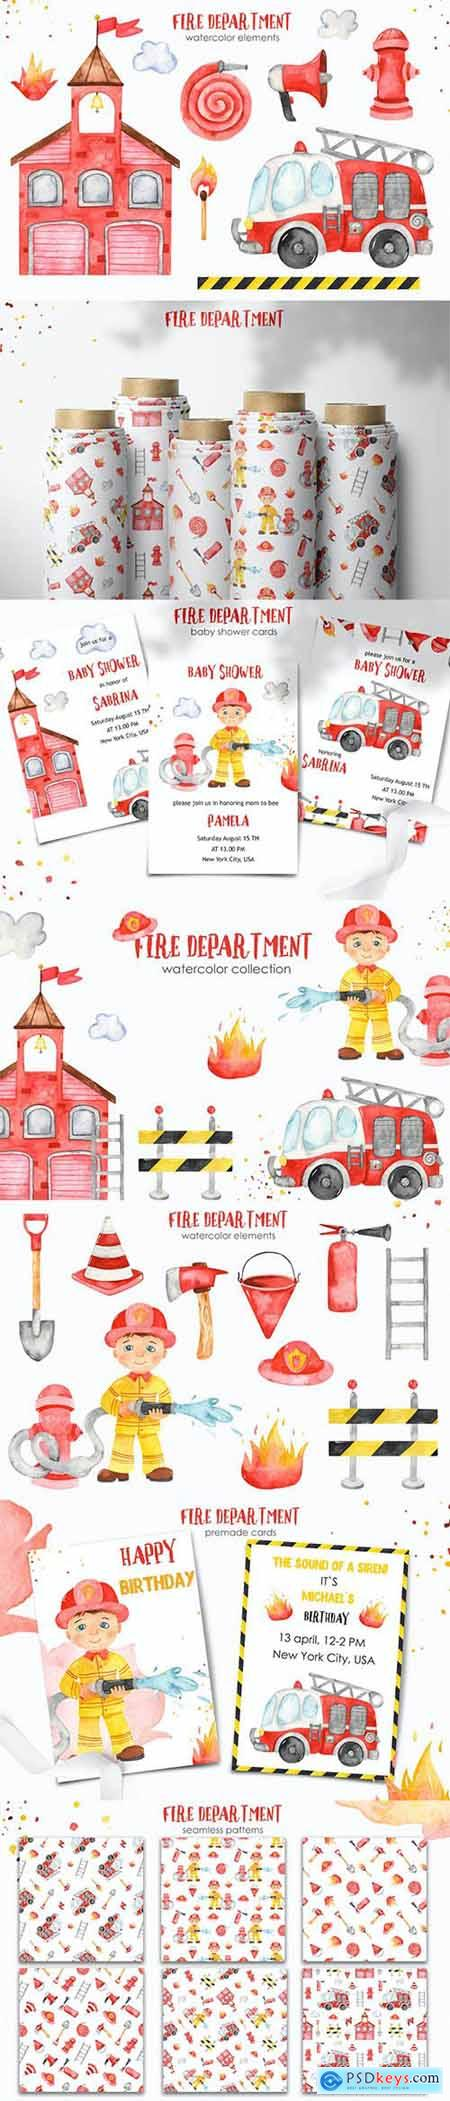 Watercolor Fire Department Clipart